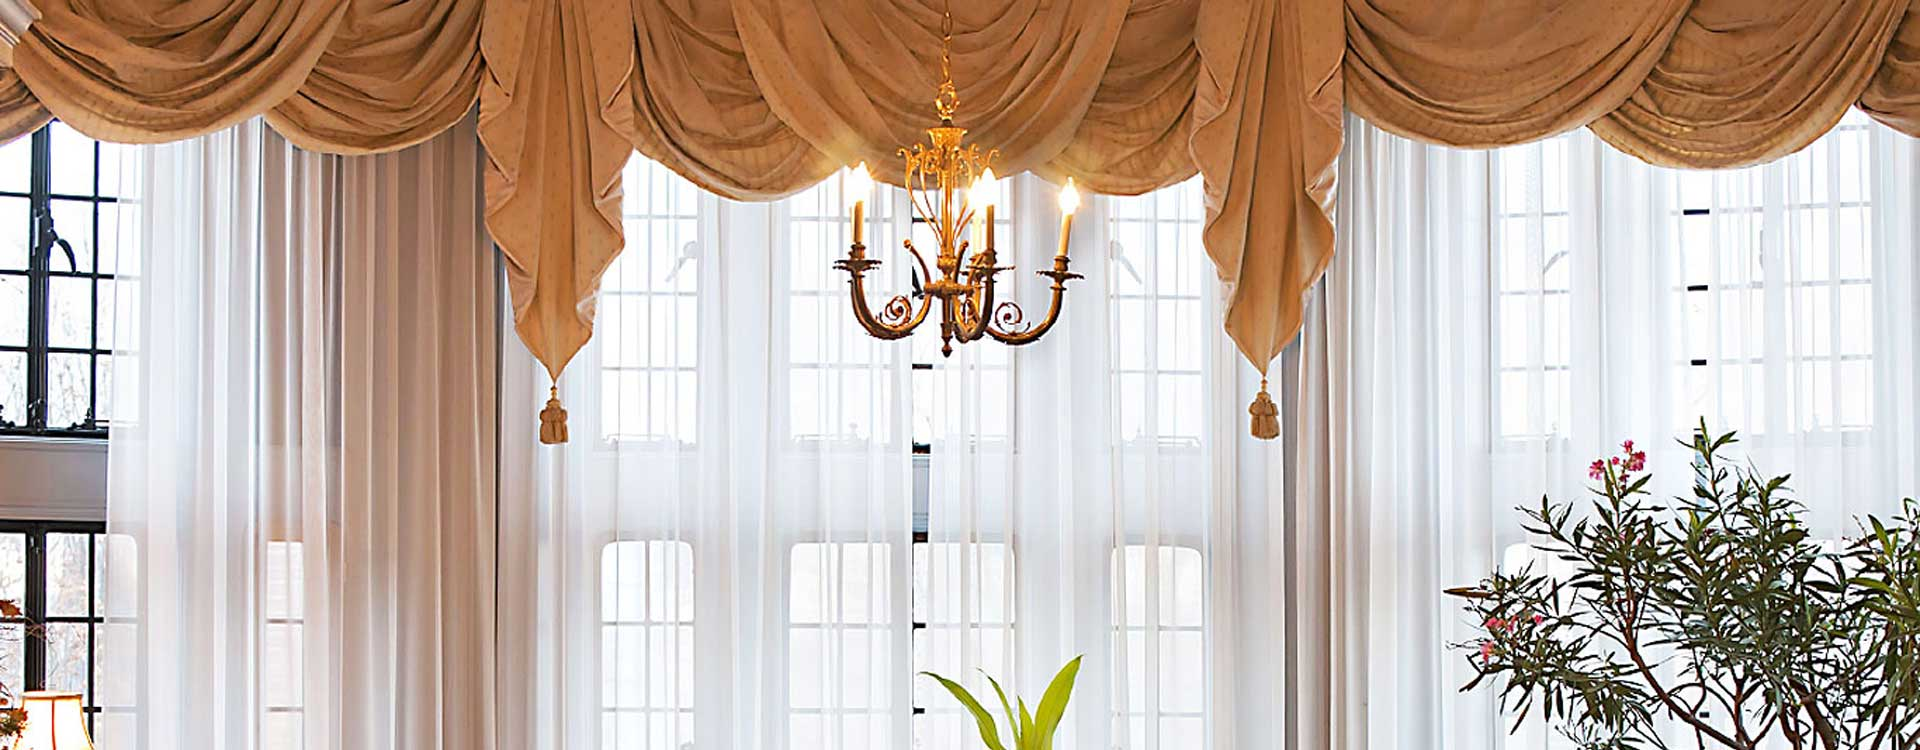 isn there more are beautiful that some still here wayfair less sheerpinchpleatsinglecurtainpanel to expensive curtains look few get for made way and drapes a ready mayangeometricsemi t